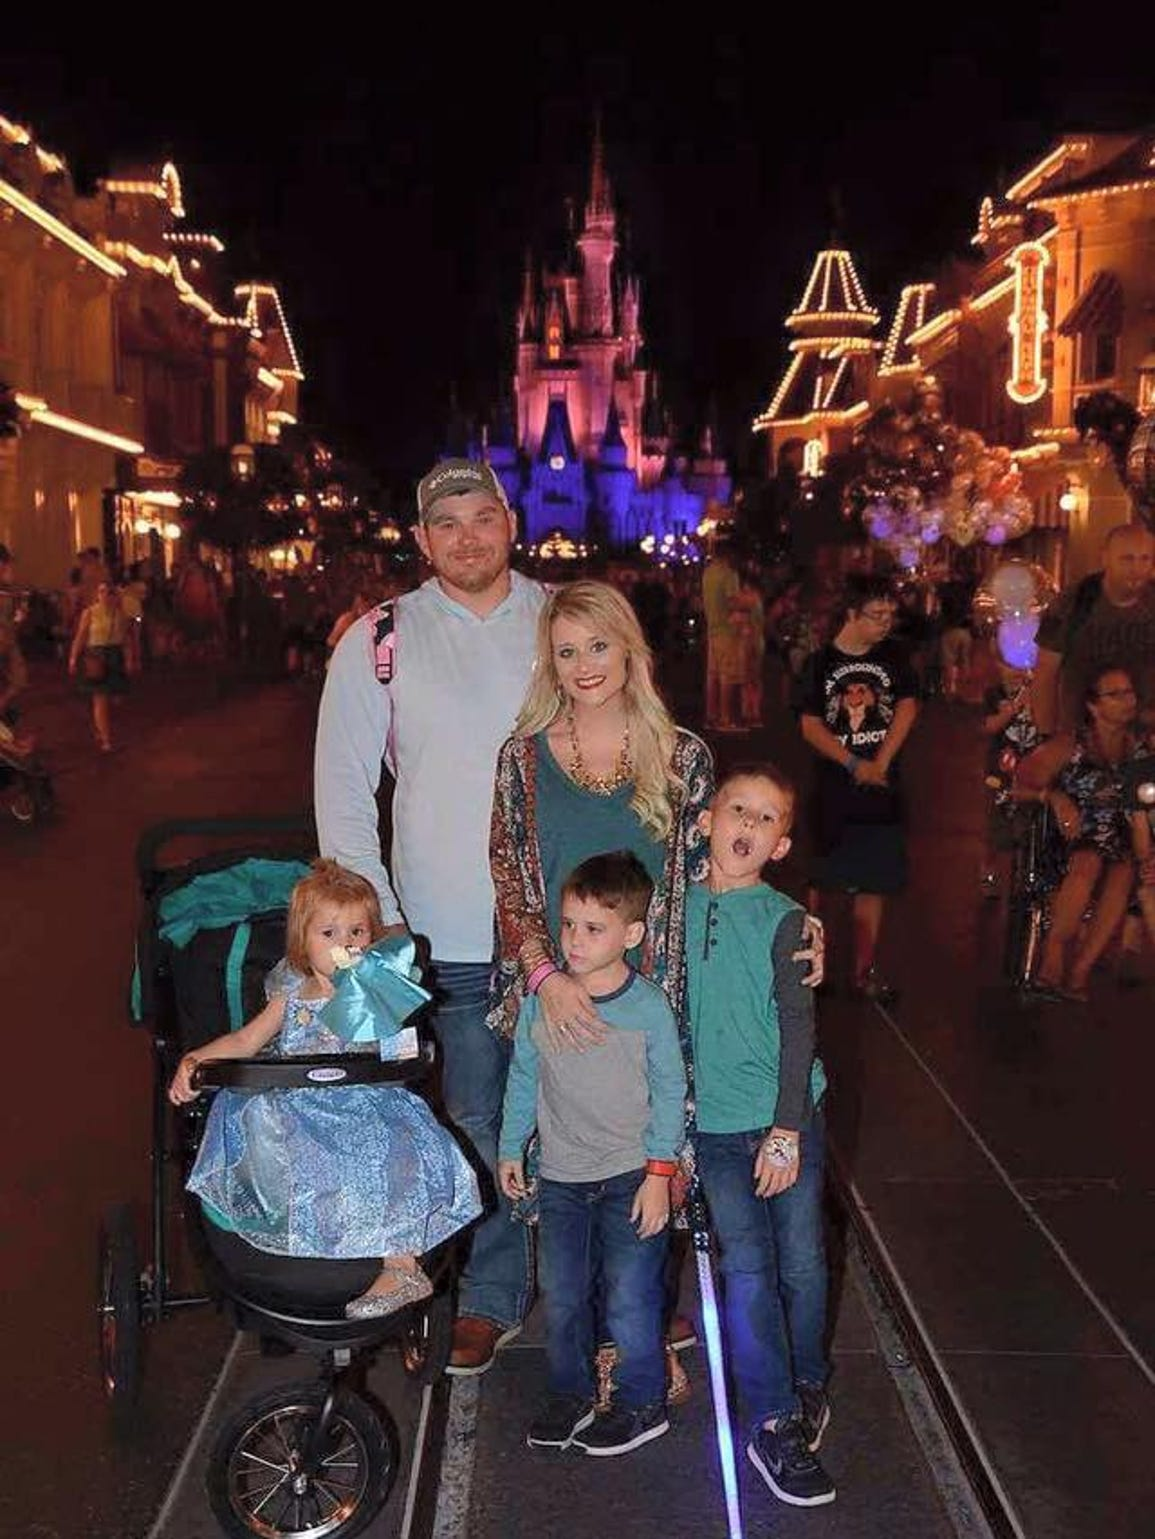 Megan and her family took a trip to Disney World shortly